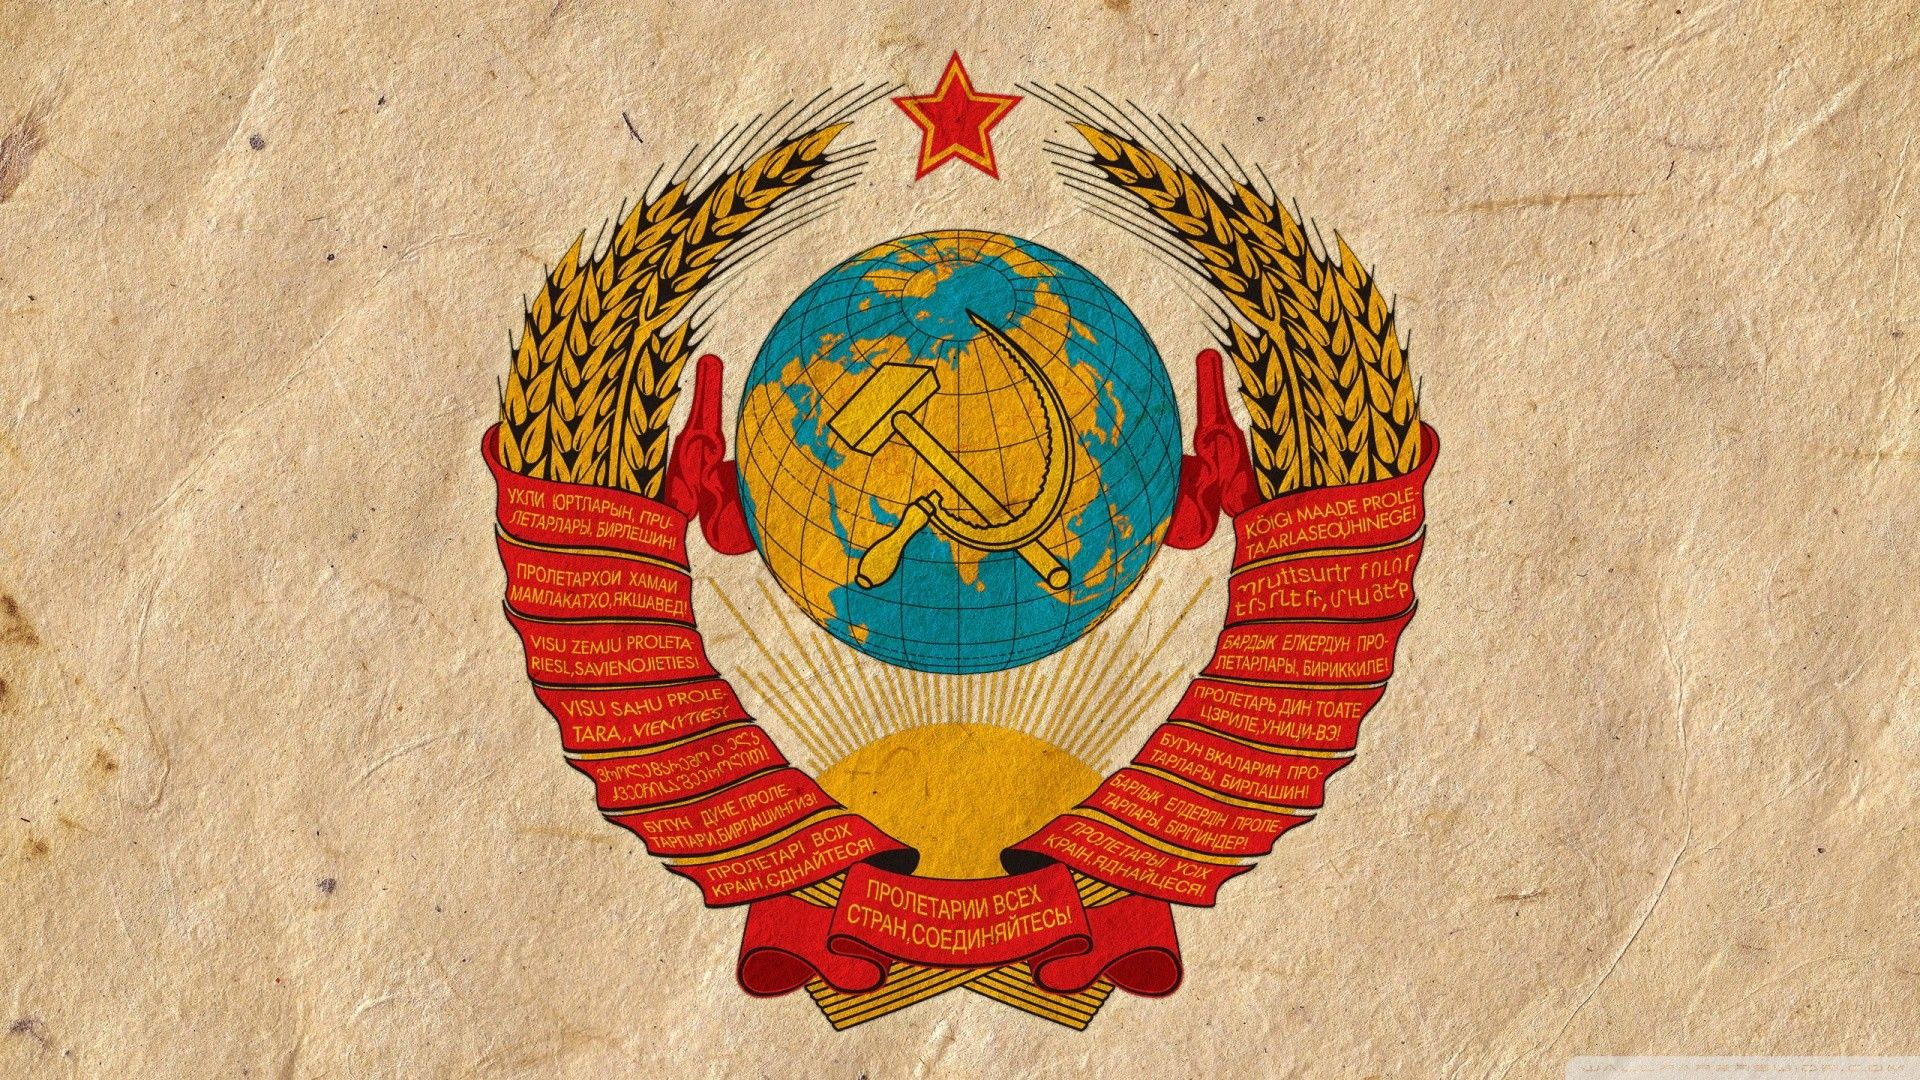 Soviet union wallpaper wallpapertag - Ussr wallpaper ...